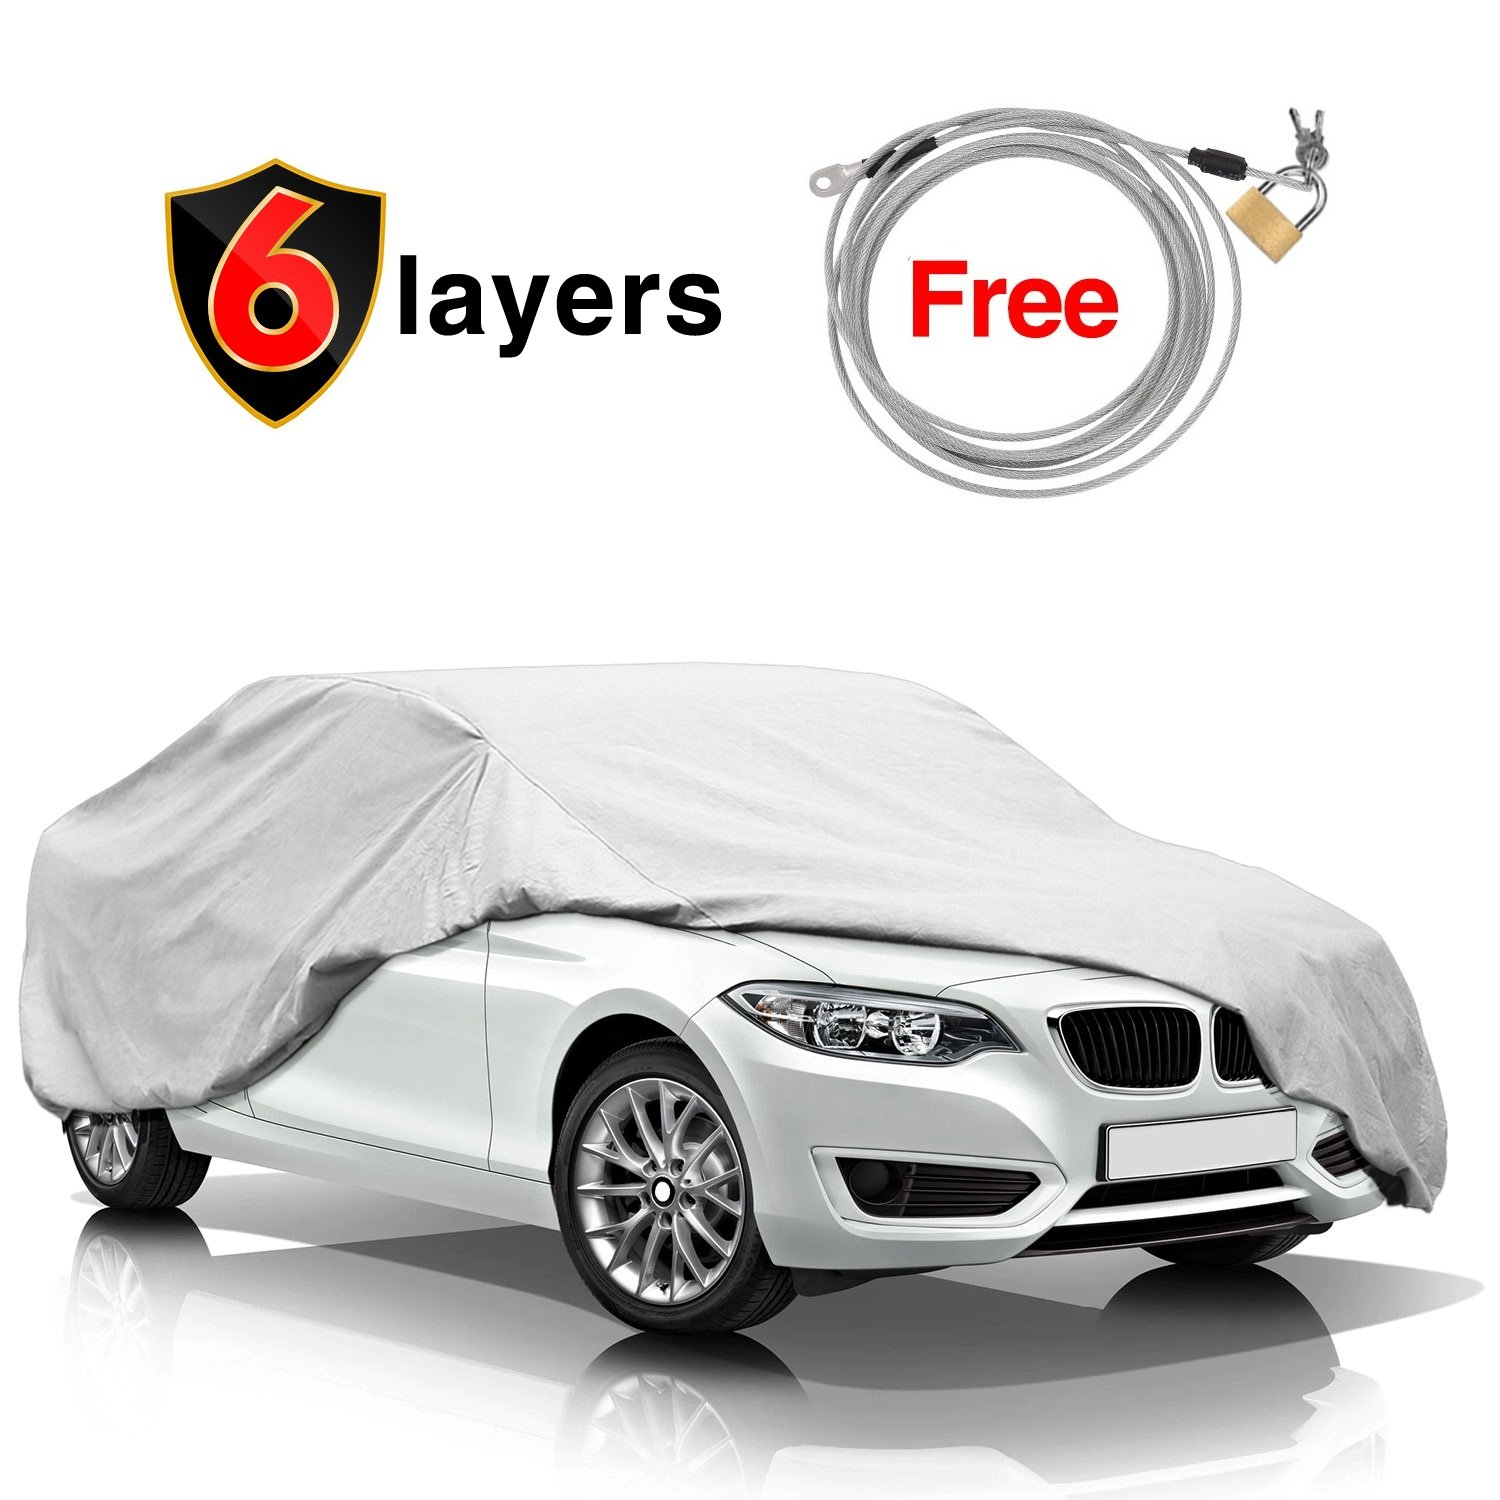 KAKIT 6 Layers Car Cover Snow Cover - Durable Windproof Waterproof for Indoor Outdoor, All Weather Cover for Car Automobiles, Windproof Ribbon & Anti-theft Lock, Fits 199' - 229' Fits 199 - 229